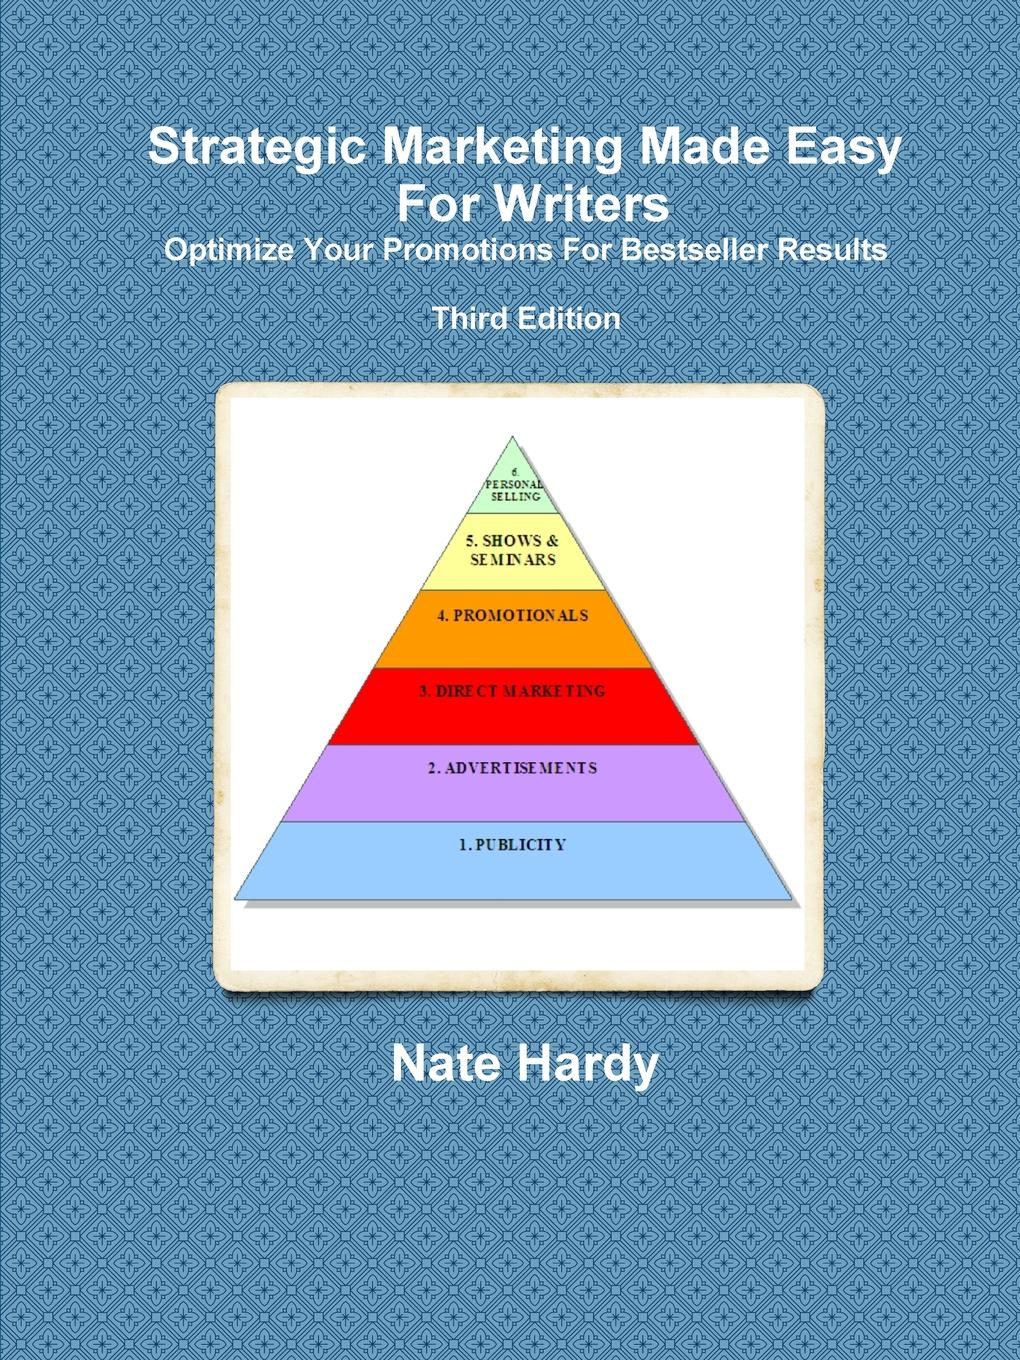 Strategic Marketing Made Easy For Writers. Optimize Your Promotions For Bestseller Results, Third Edition The popular online course is now a book! Easily identify your...